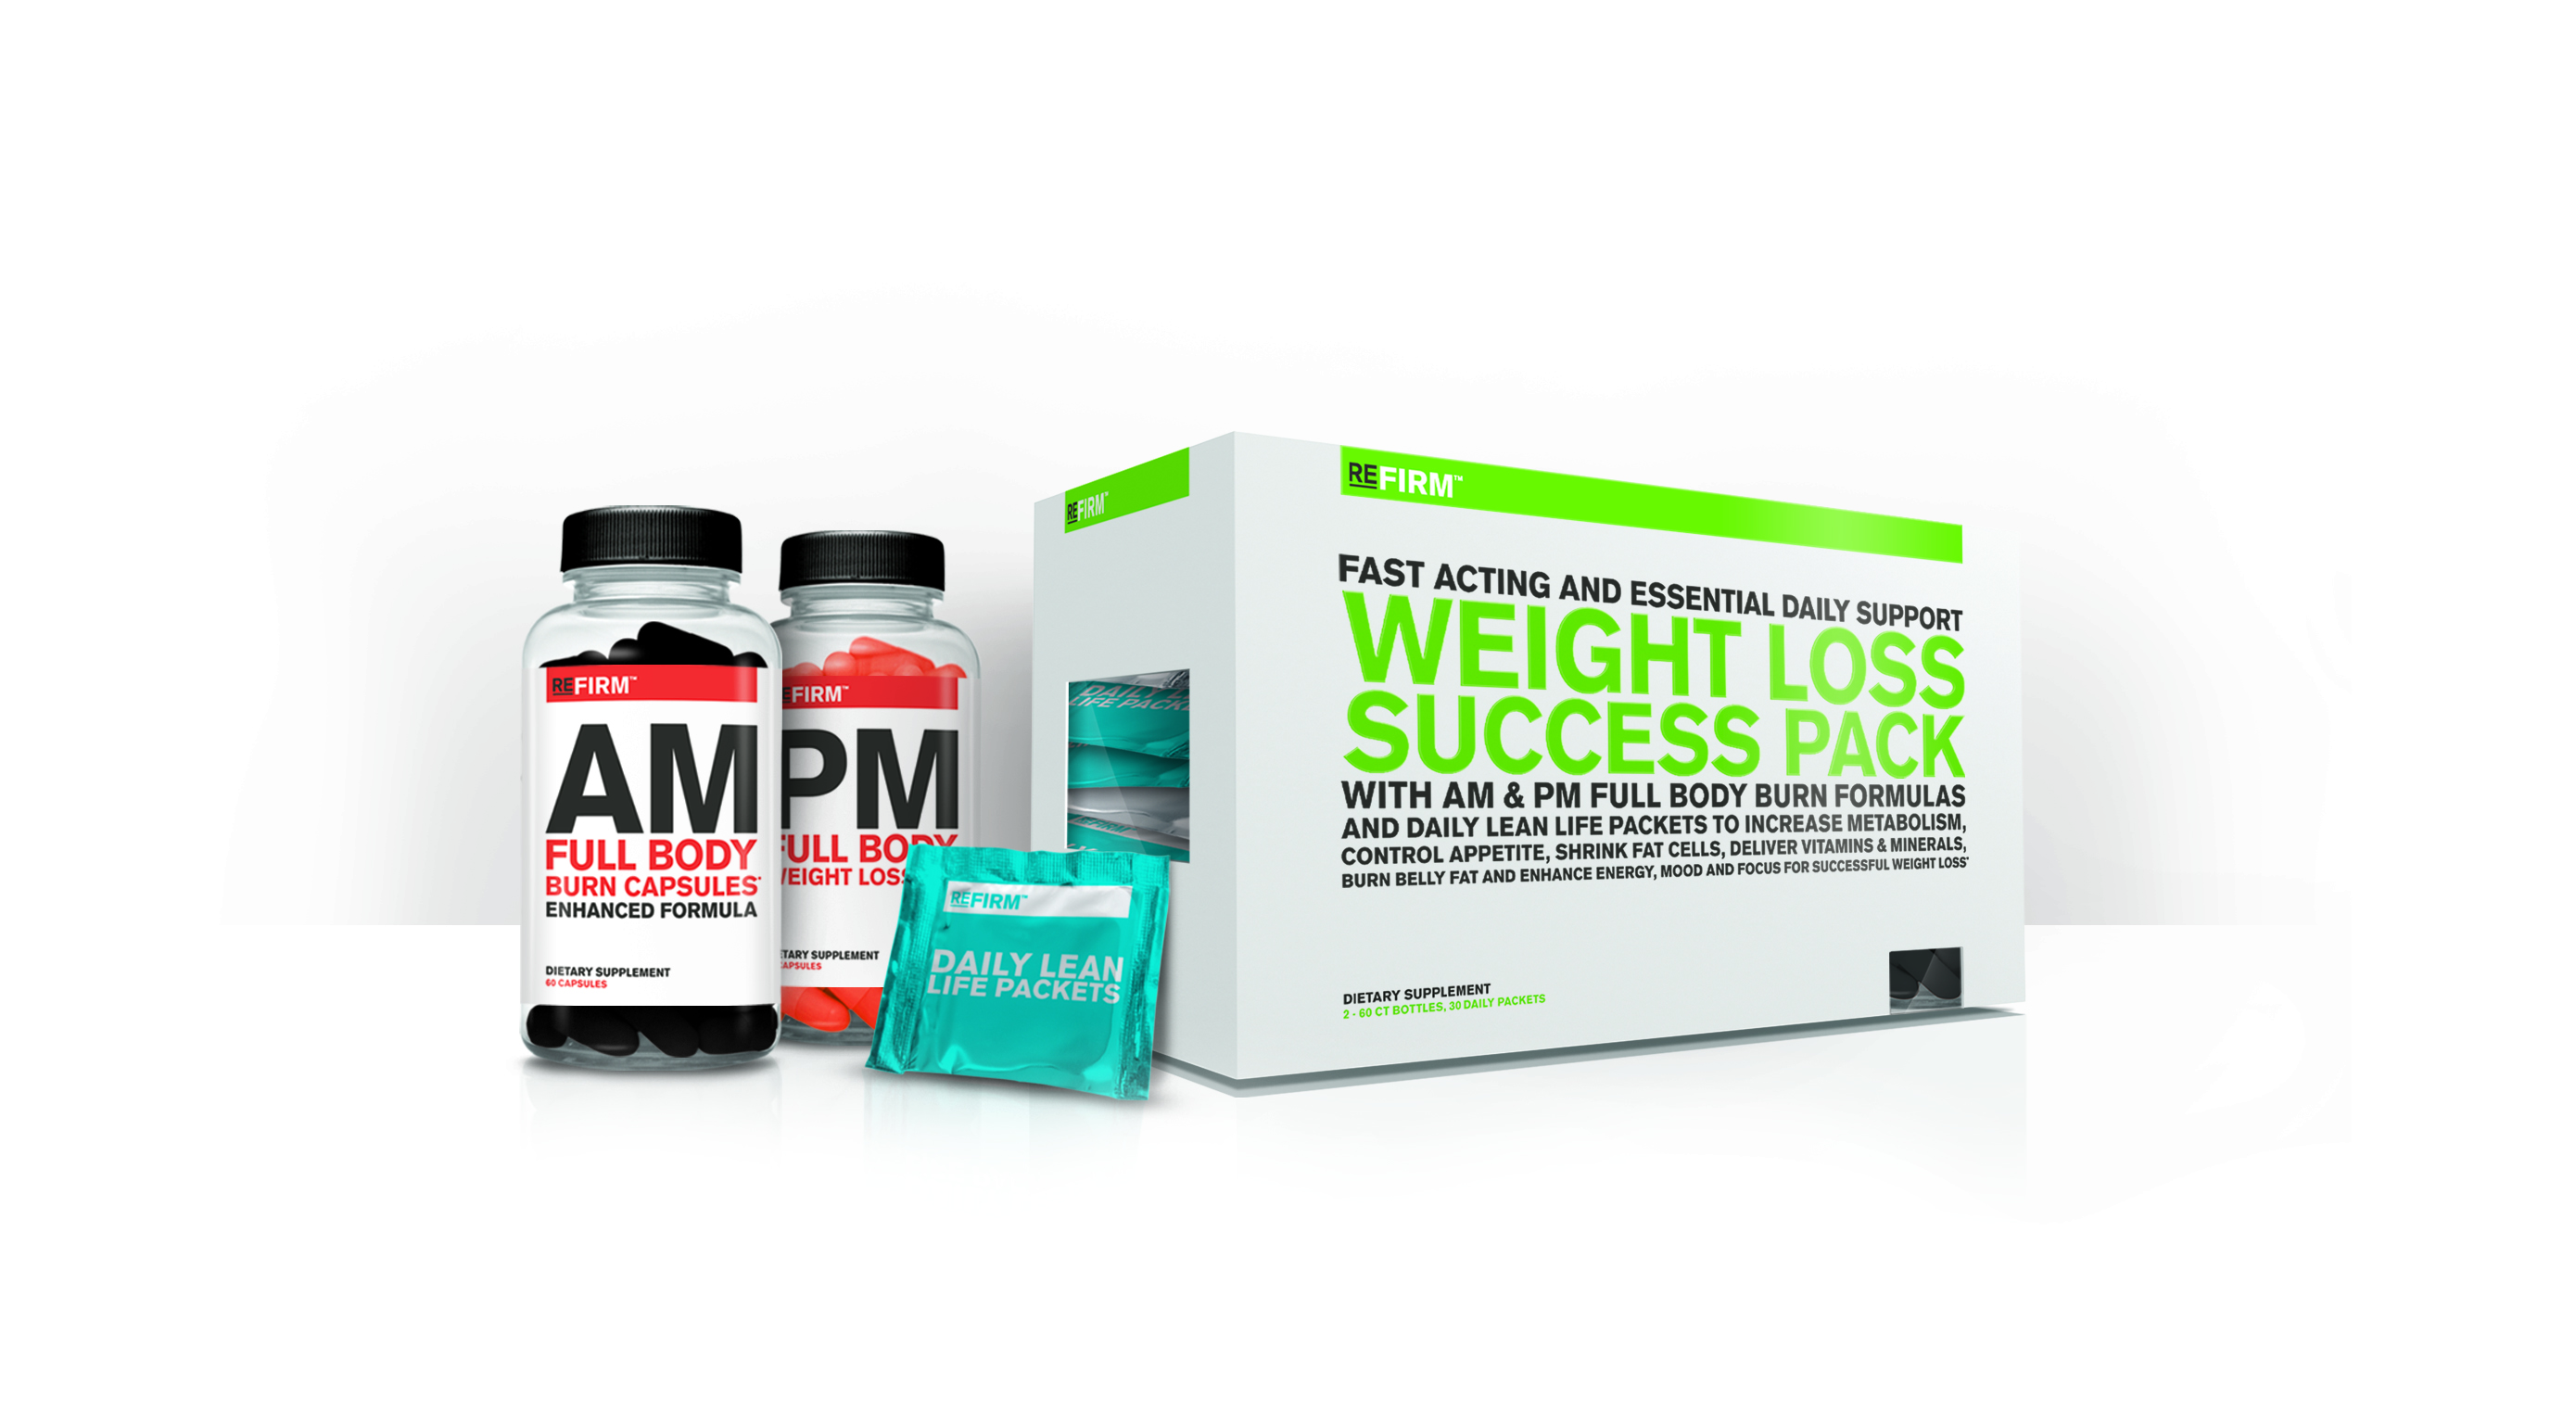 ReFirm Weight Loss Success Pack